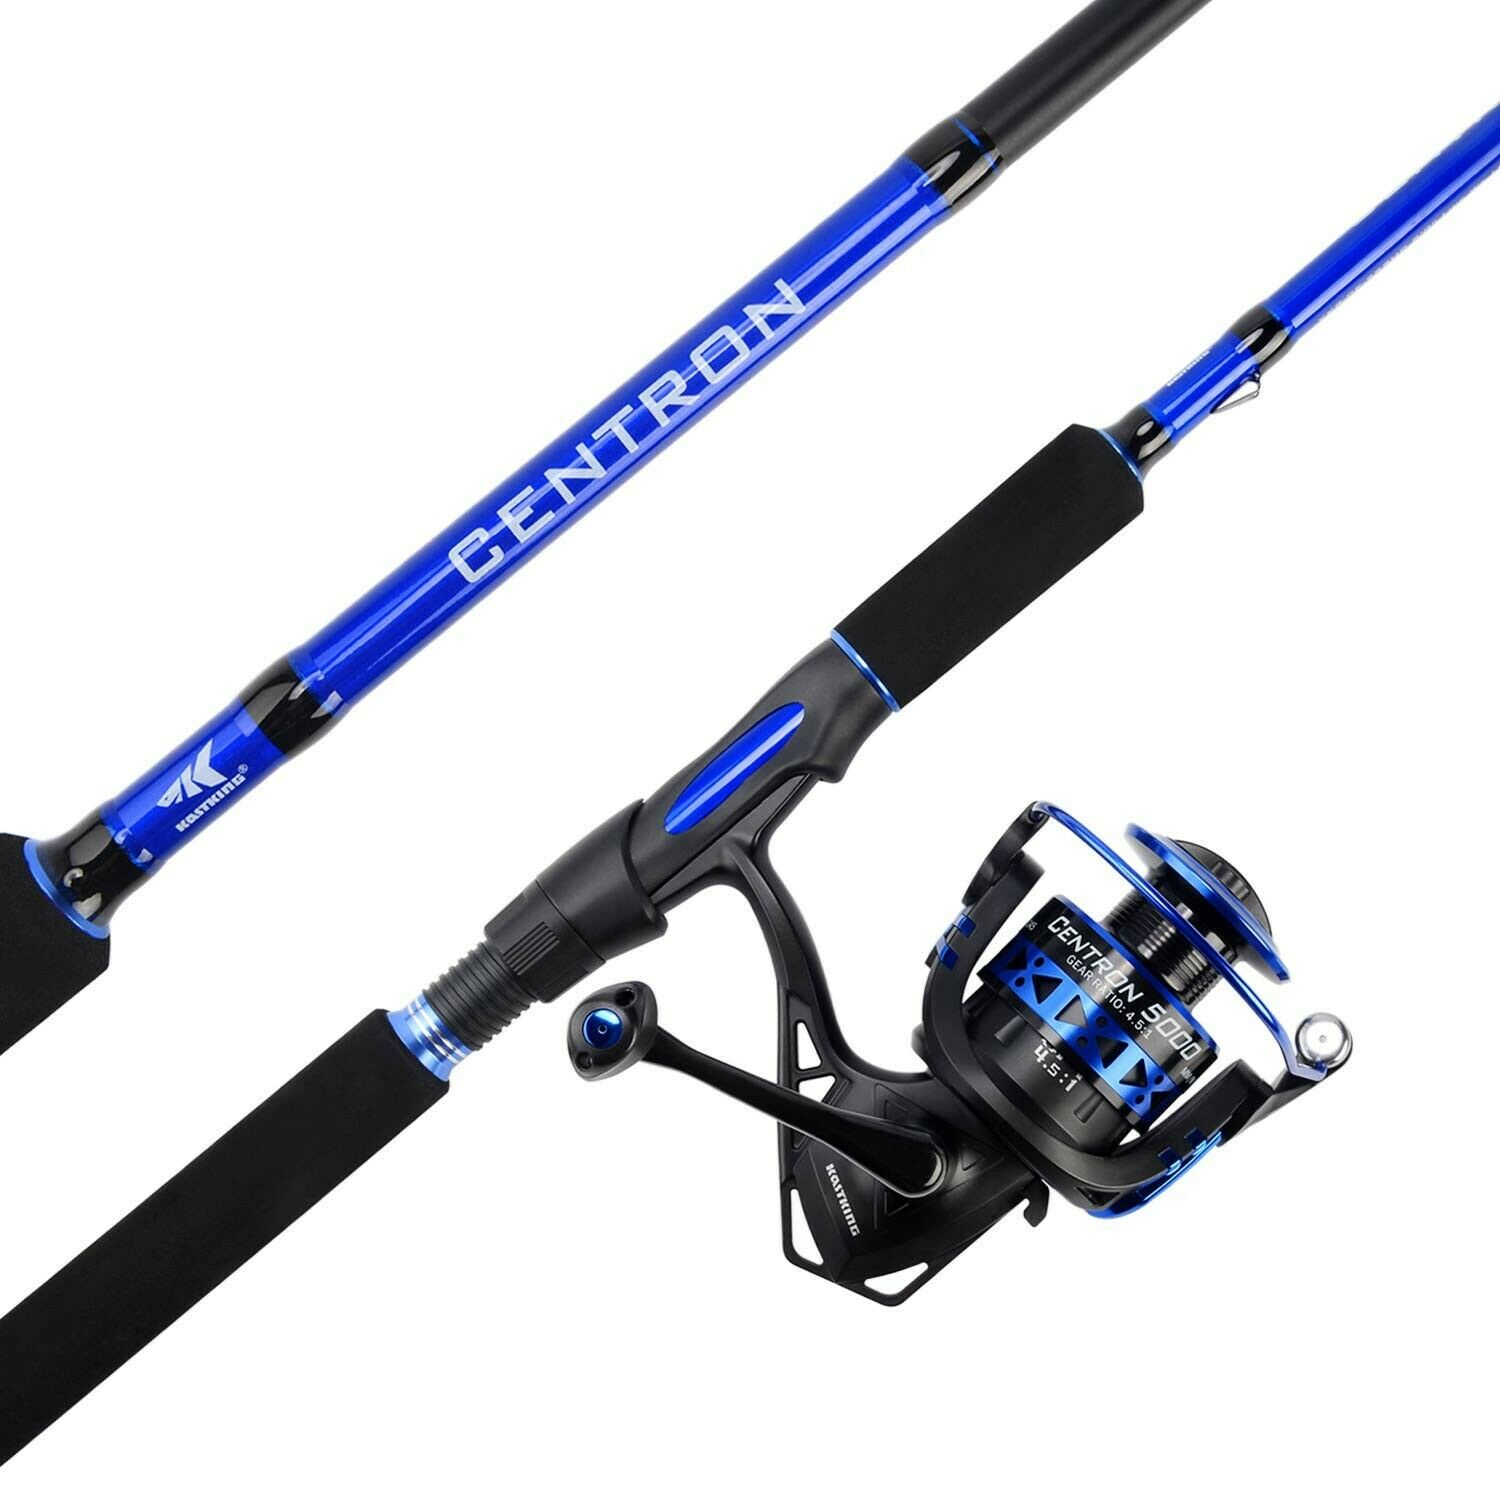 KastKing Centron Spinning  Reel – Fishing Rod Combos, To  IM6 Graphite  is discounted